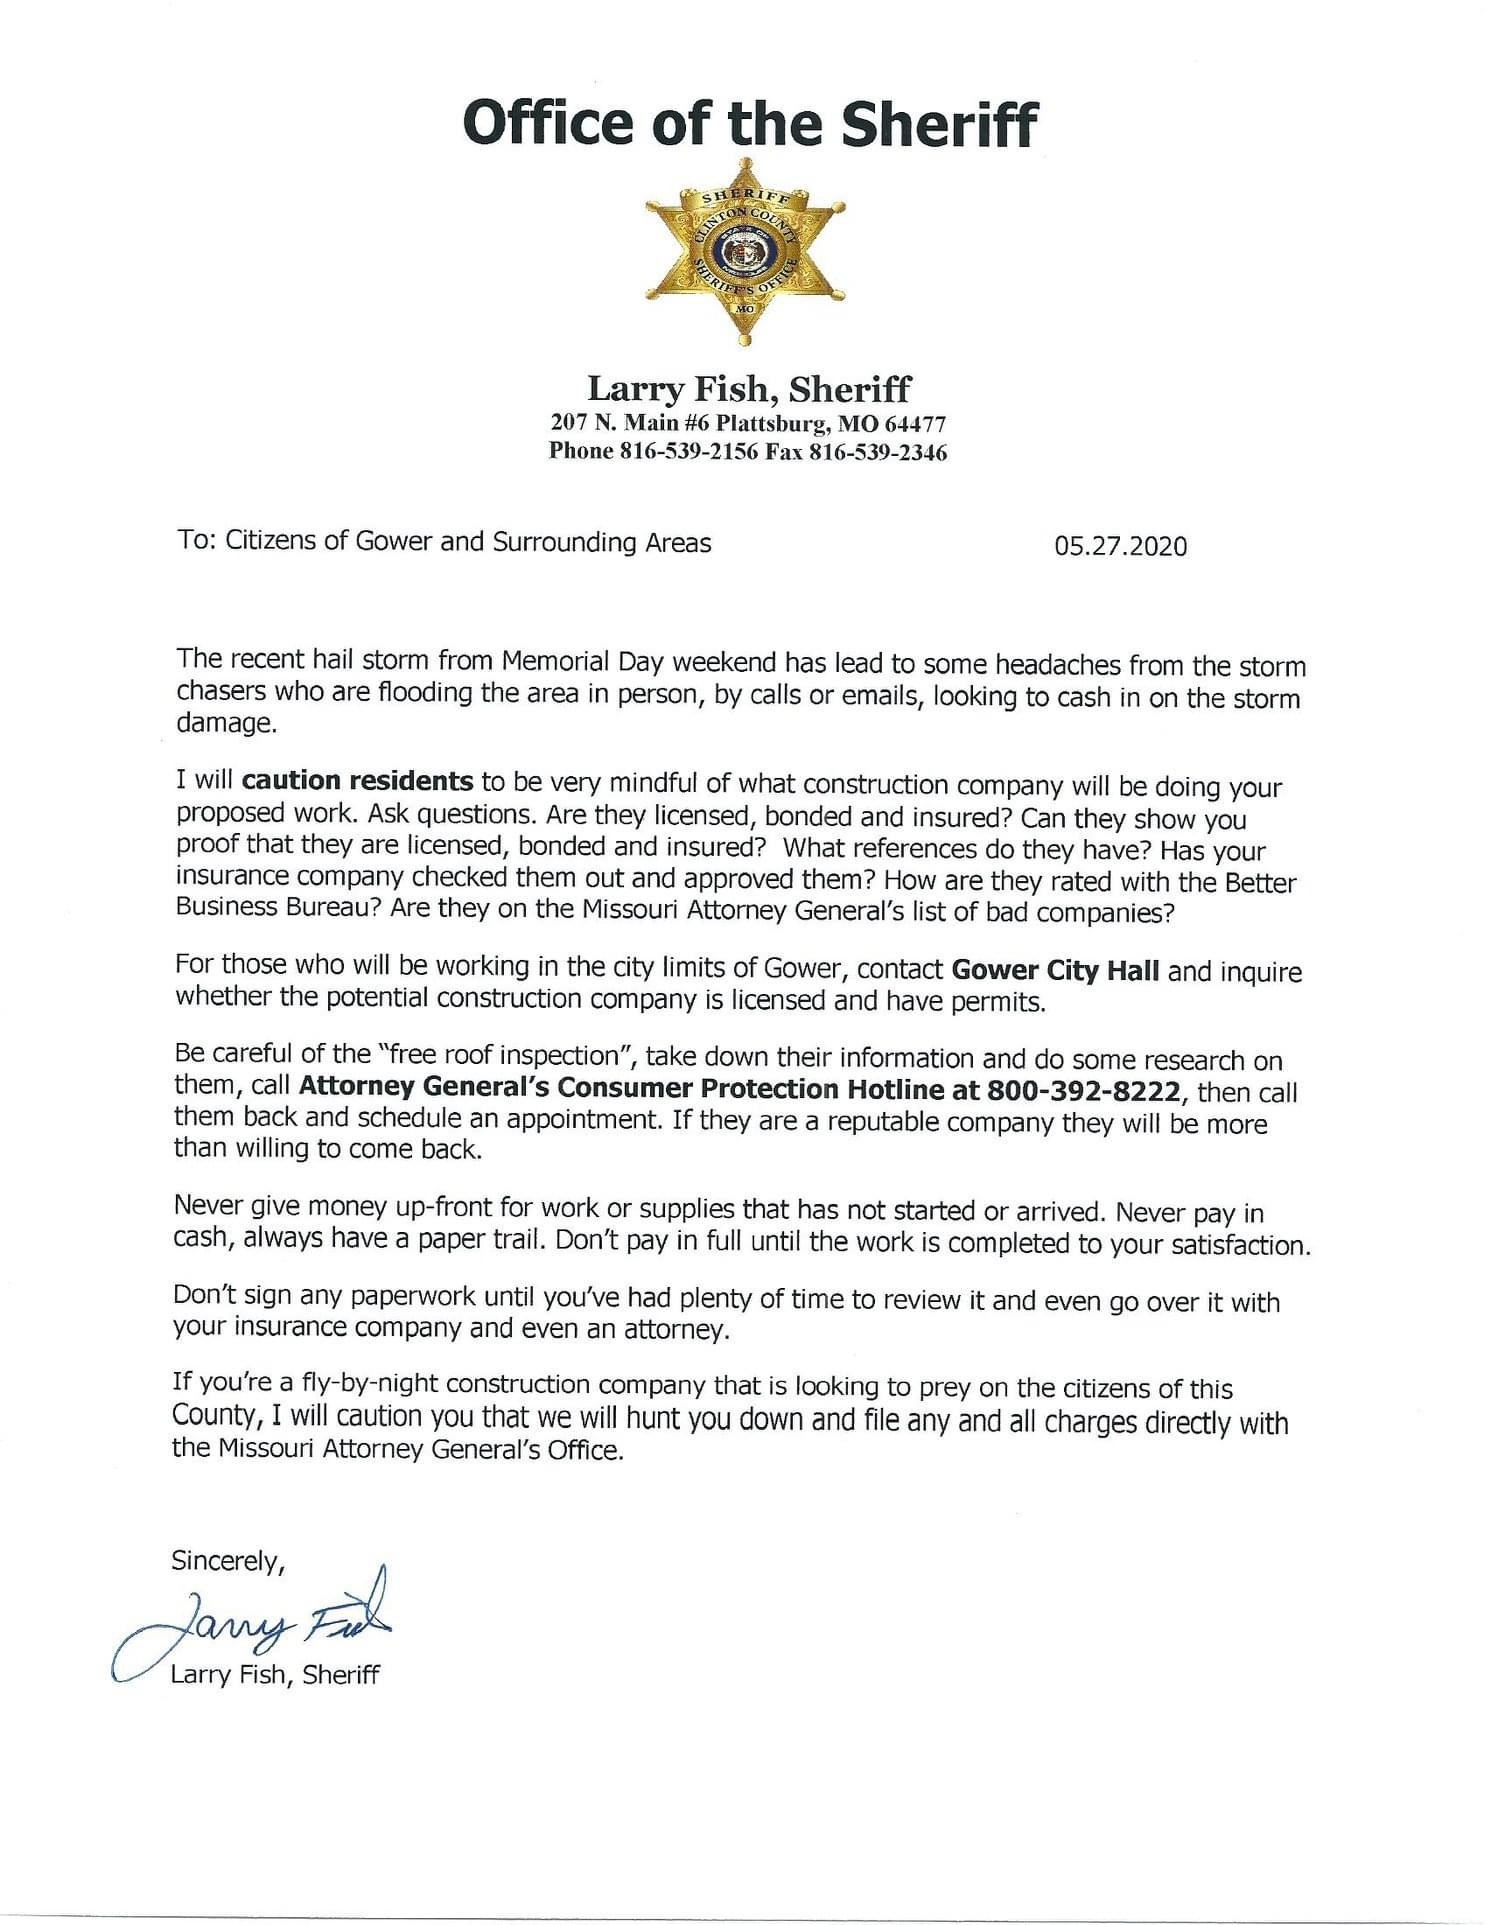 Sheriff Larry Fish Letter 6-2020